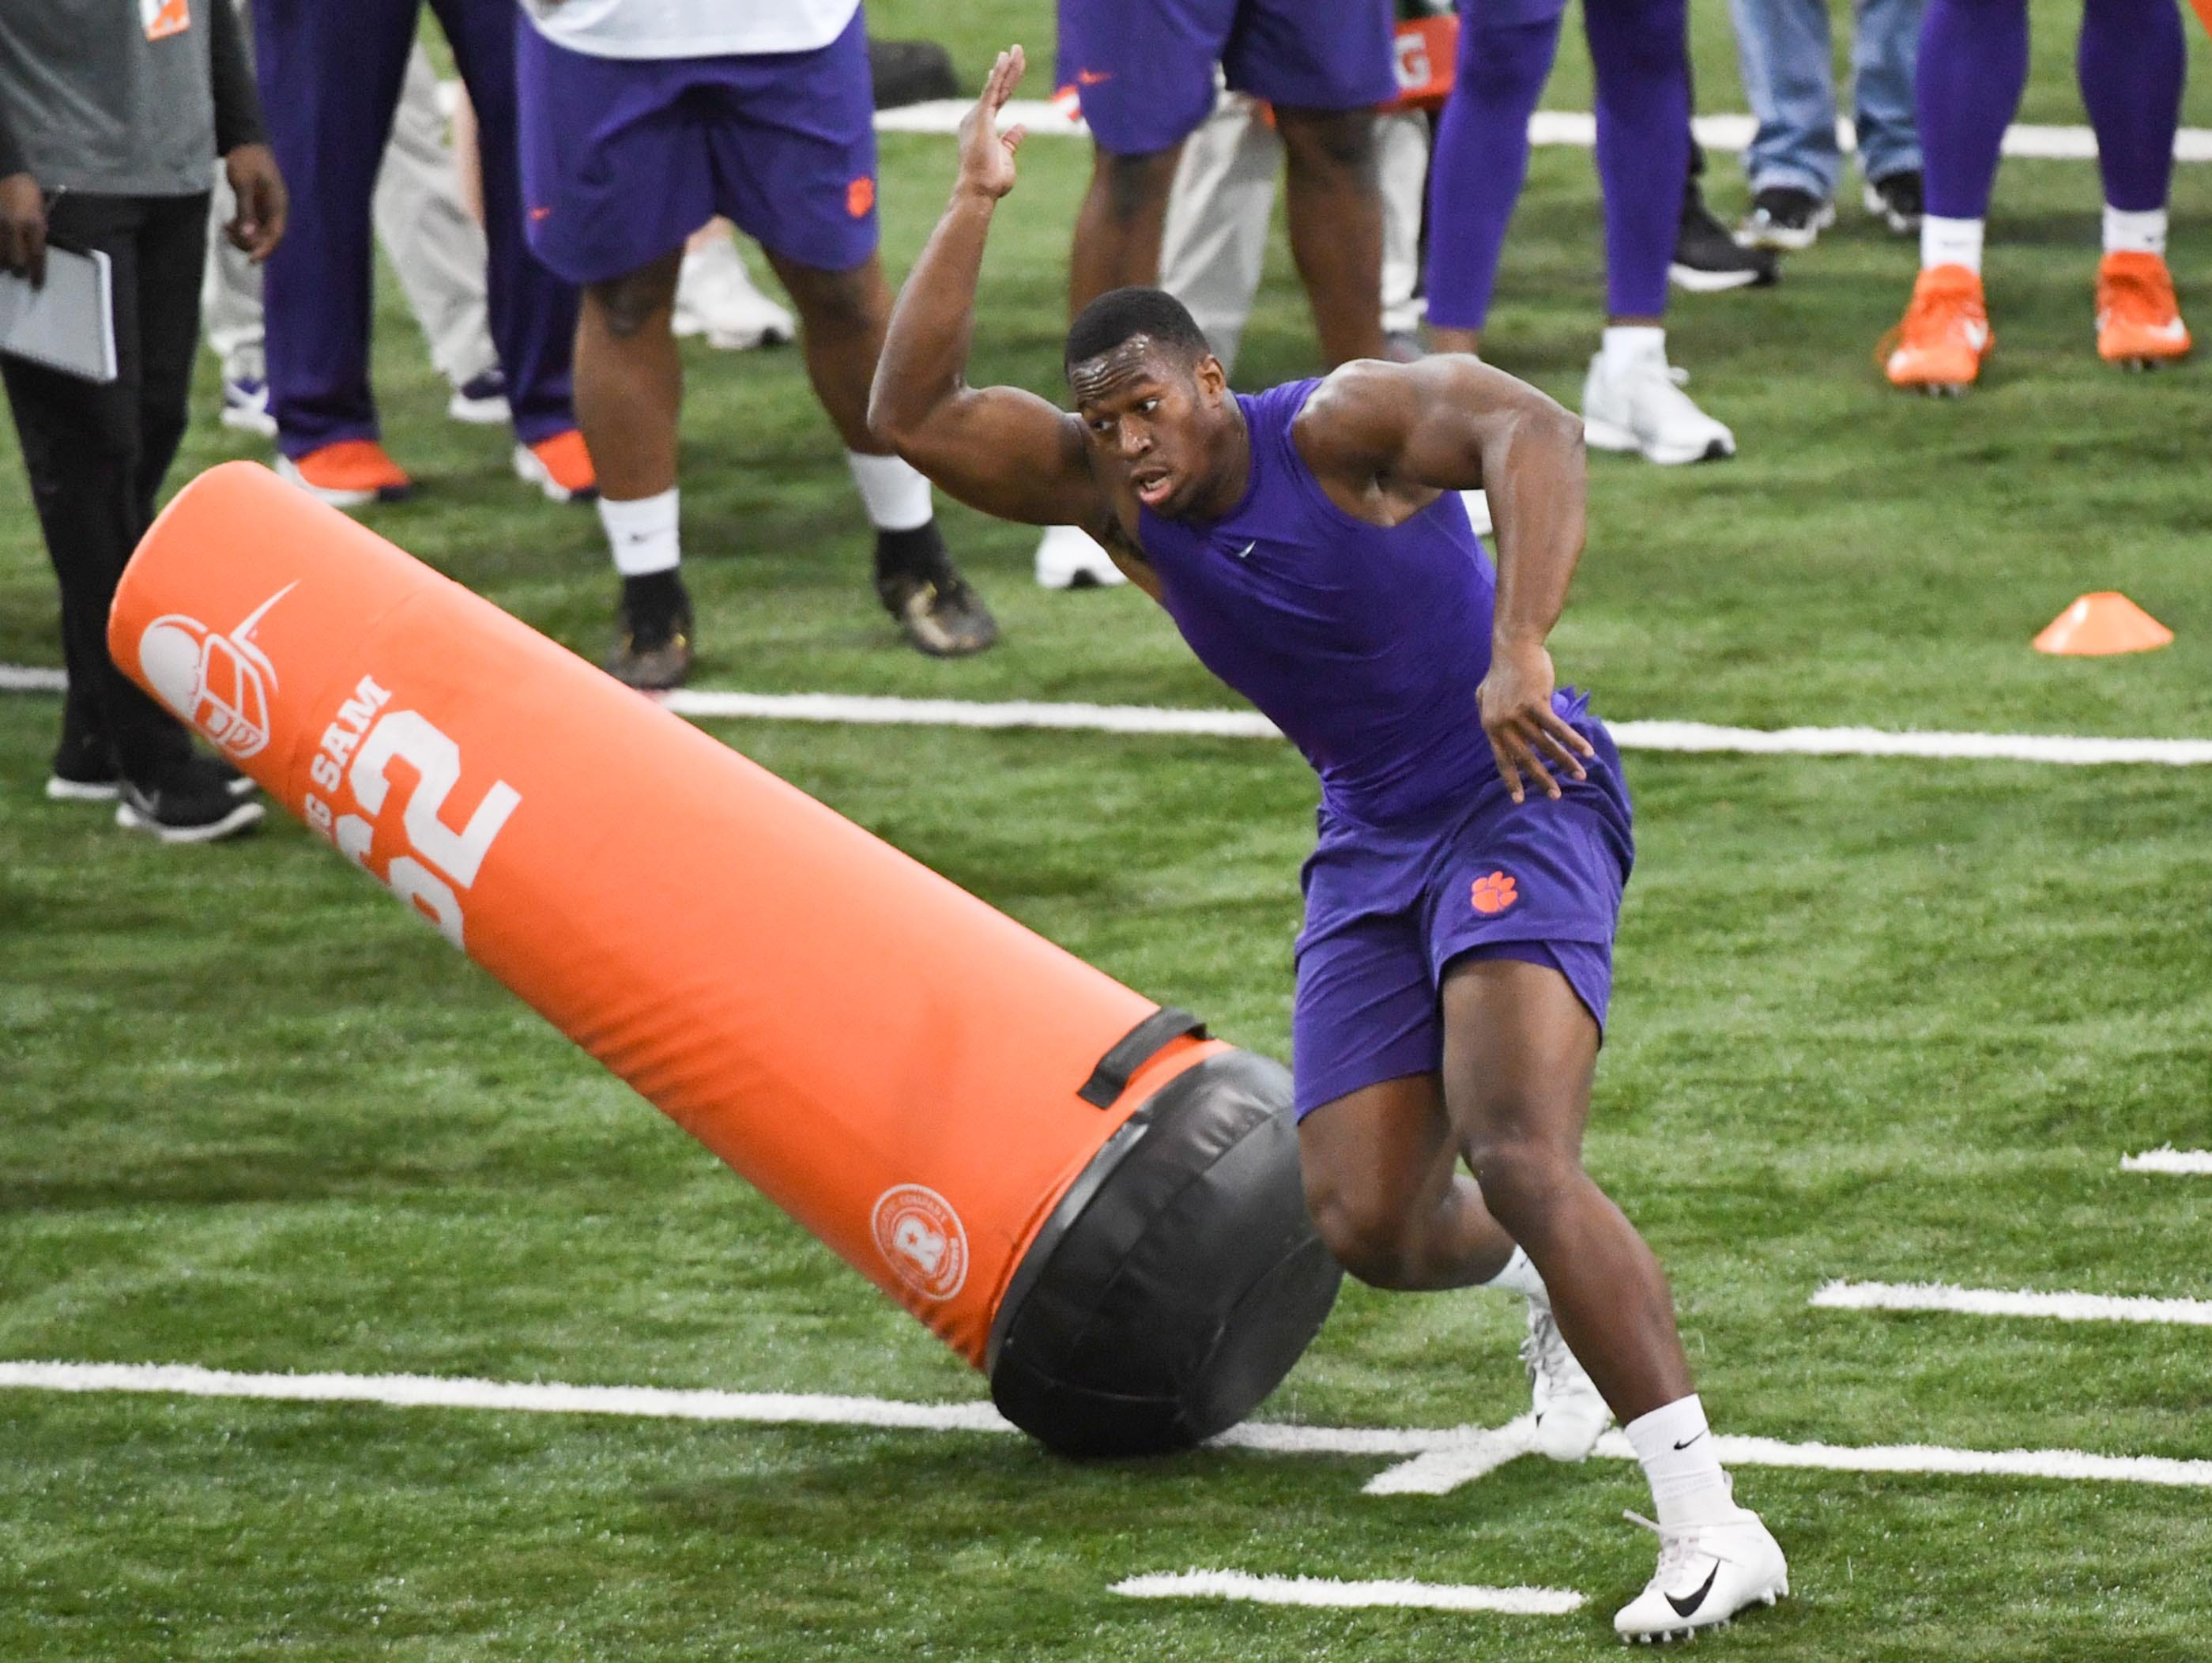 Defender Tre Lamar III shows skills to scouts during Clemson pro day at the Poe Indoor Facility in Clemson Thursday, March 14, 2019.